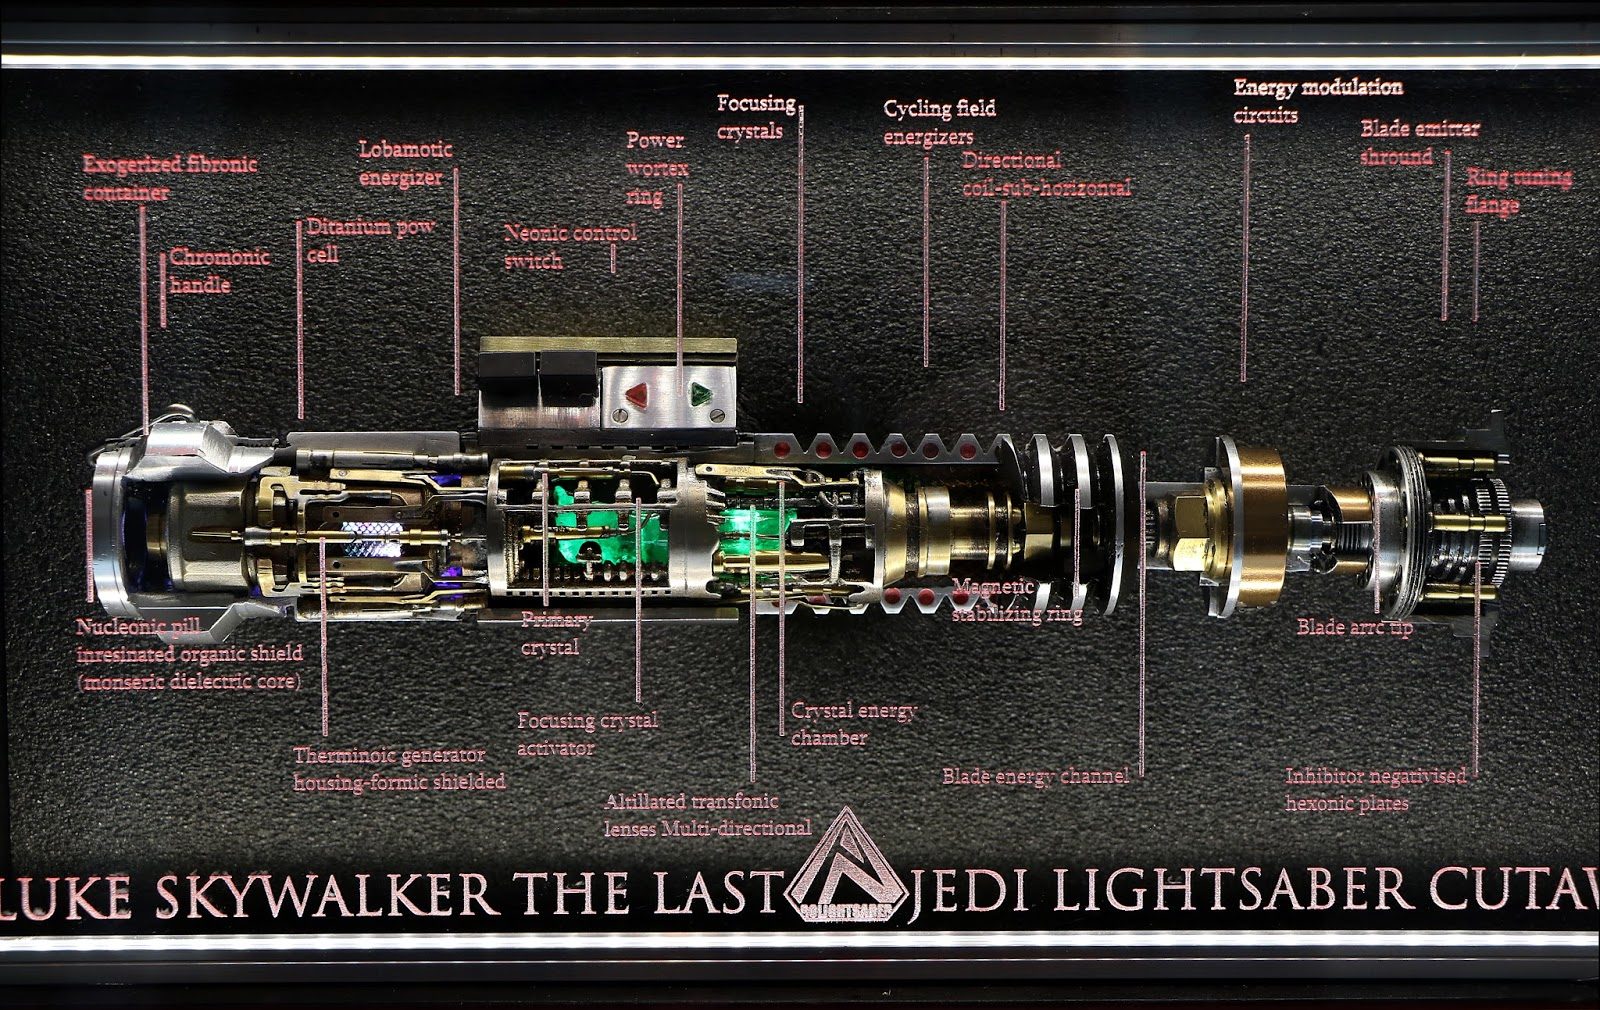 Luke Skywalker The last Jedi Lightsaber Cutaway